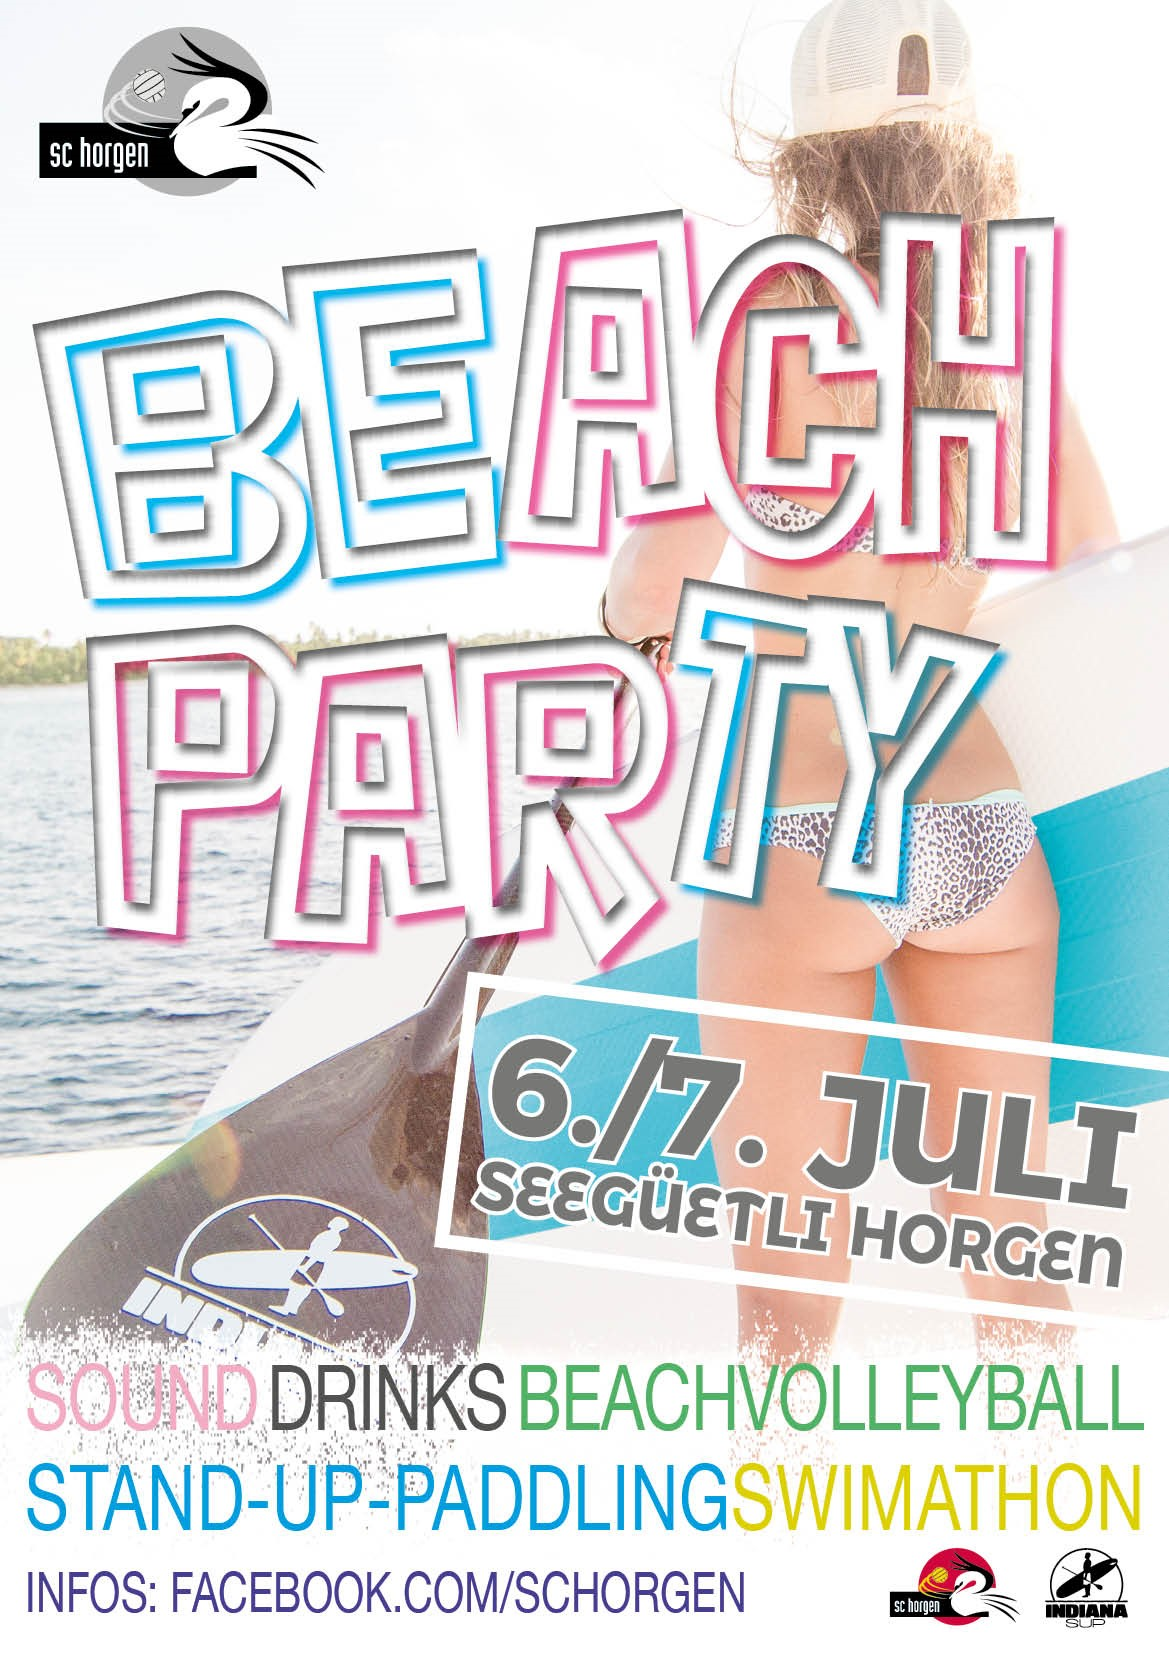 Beachparty plakat 18